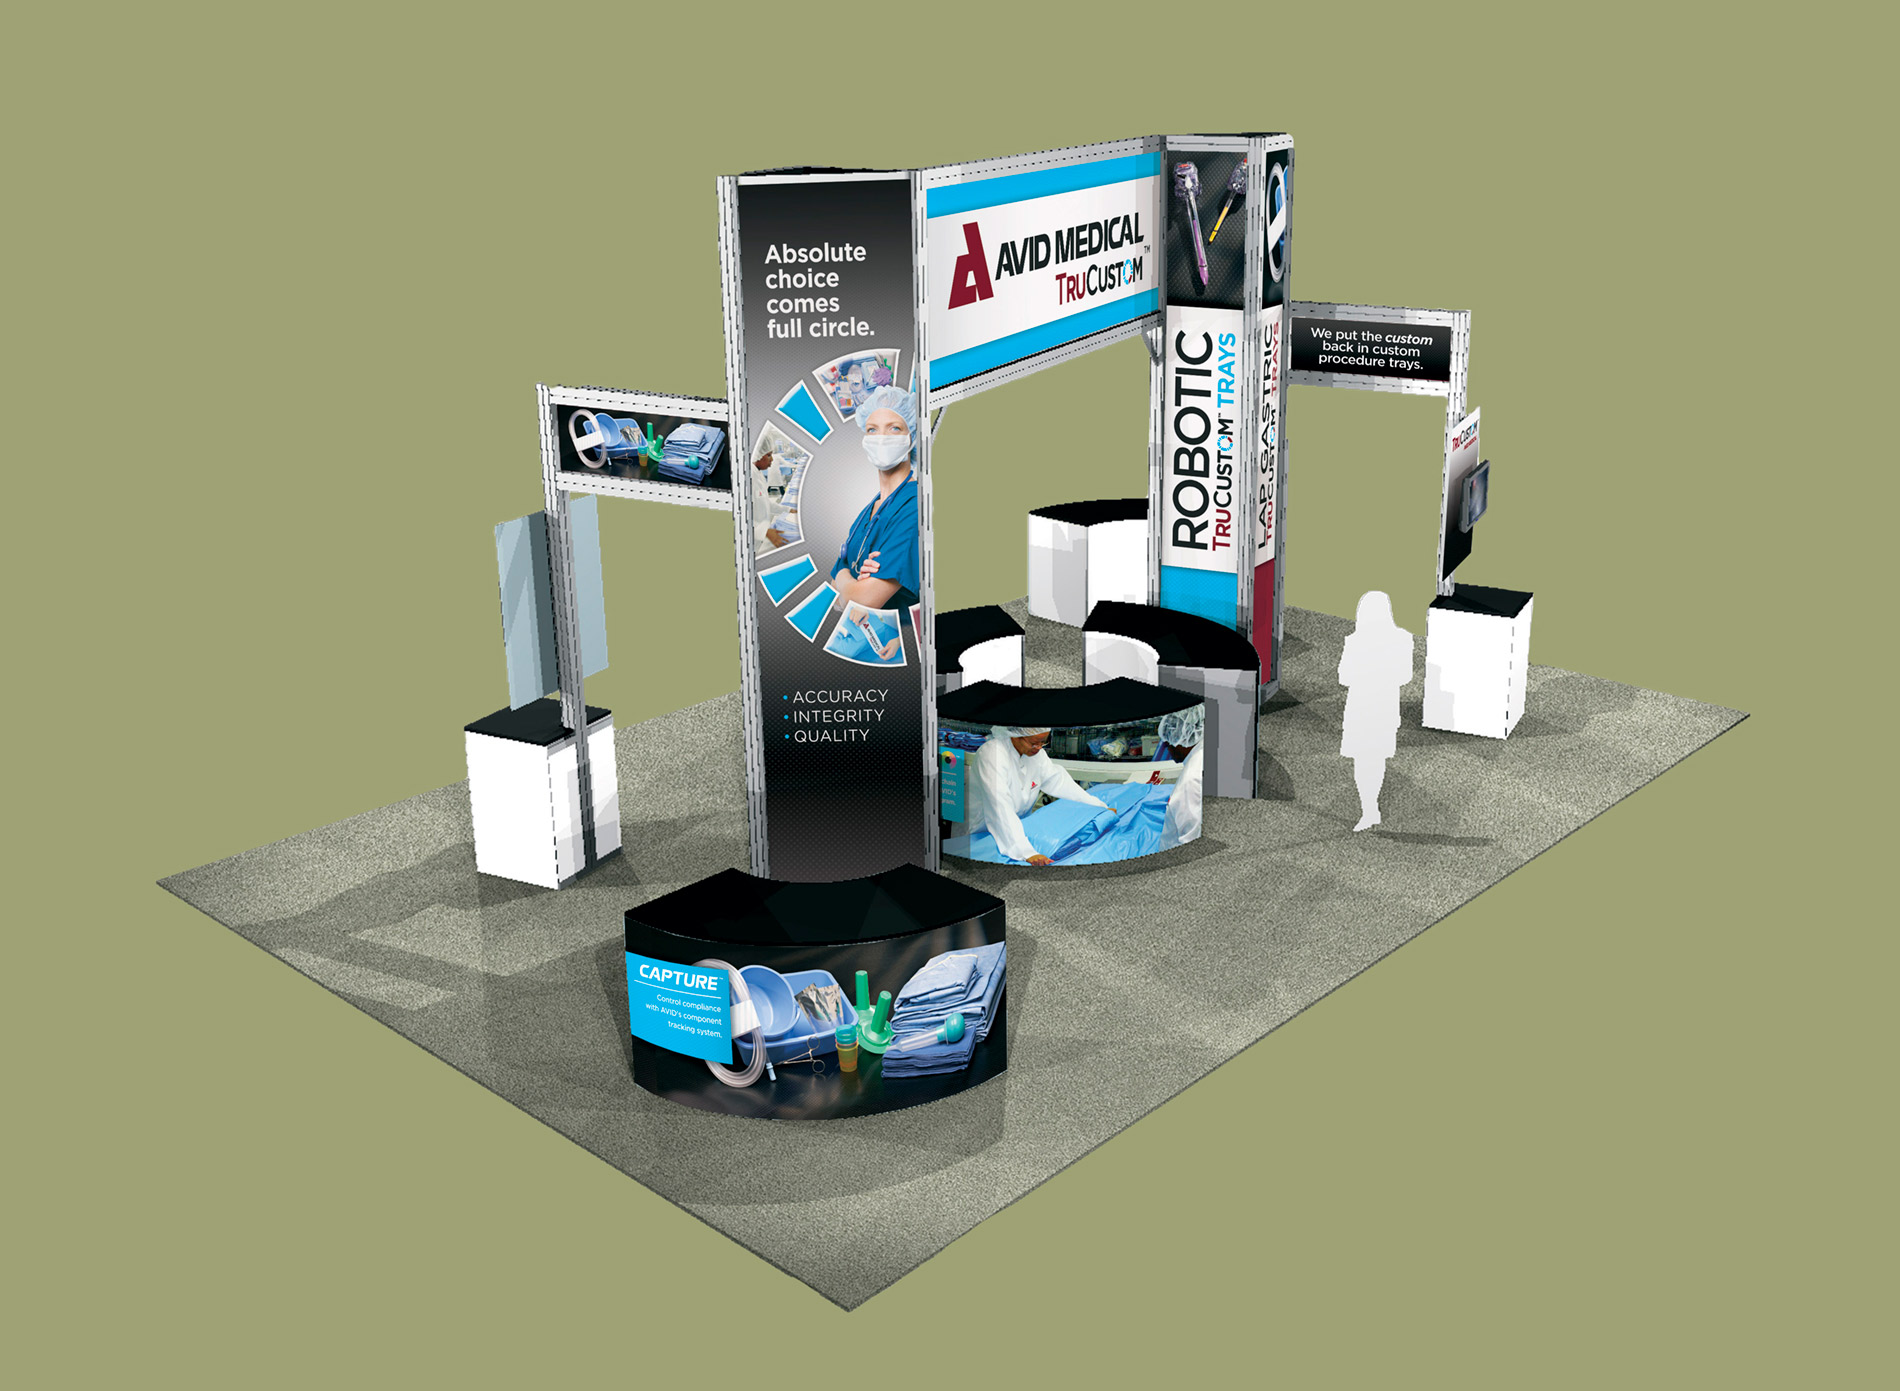 Trade Show Booth Graphic Design : Avid trade show booth design & graphics howell creative group